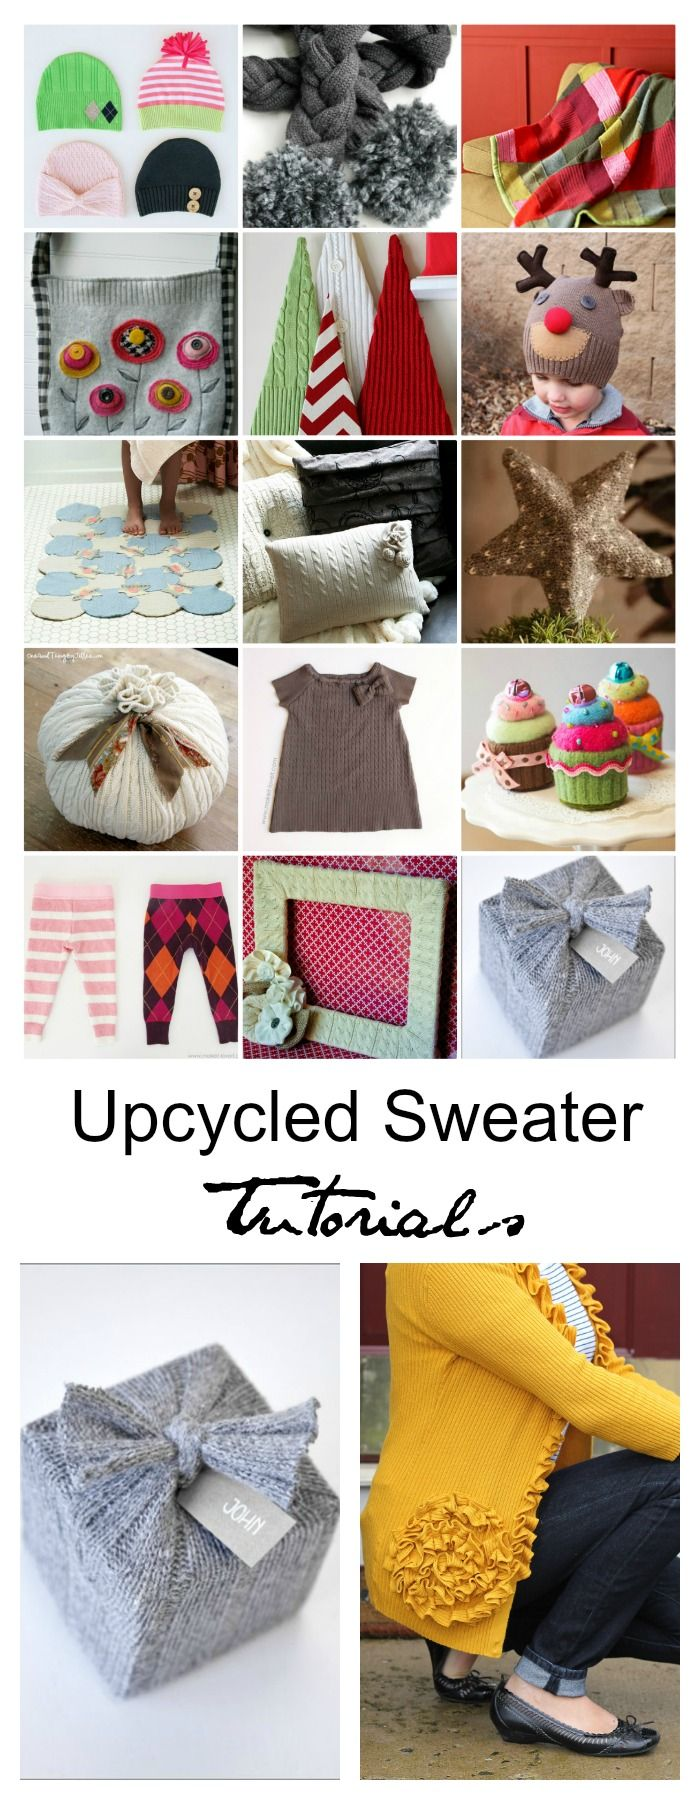 Upcycled Sweater Tutorials Pin 785 best Creative Gifts images on